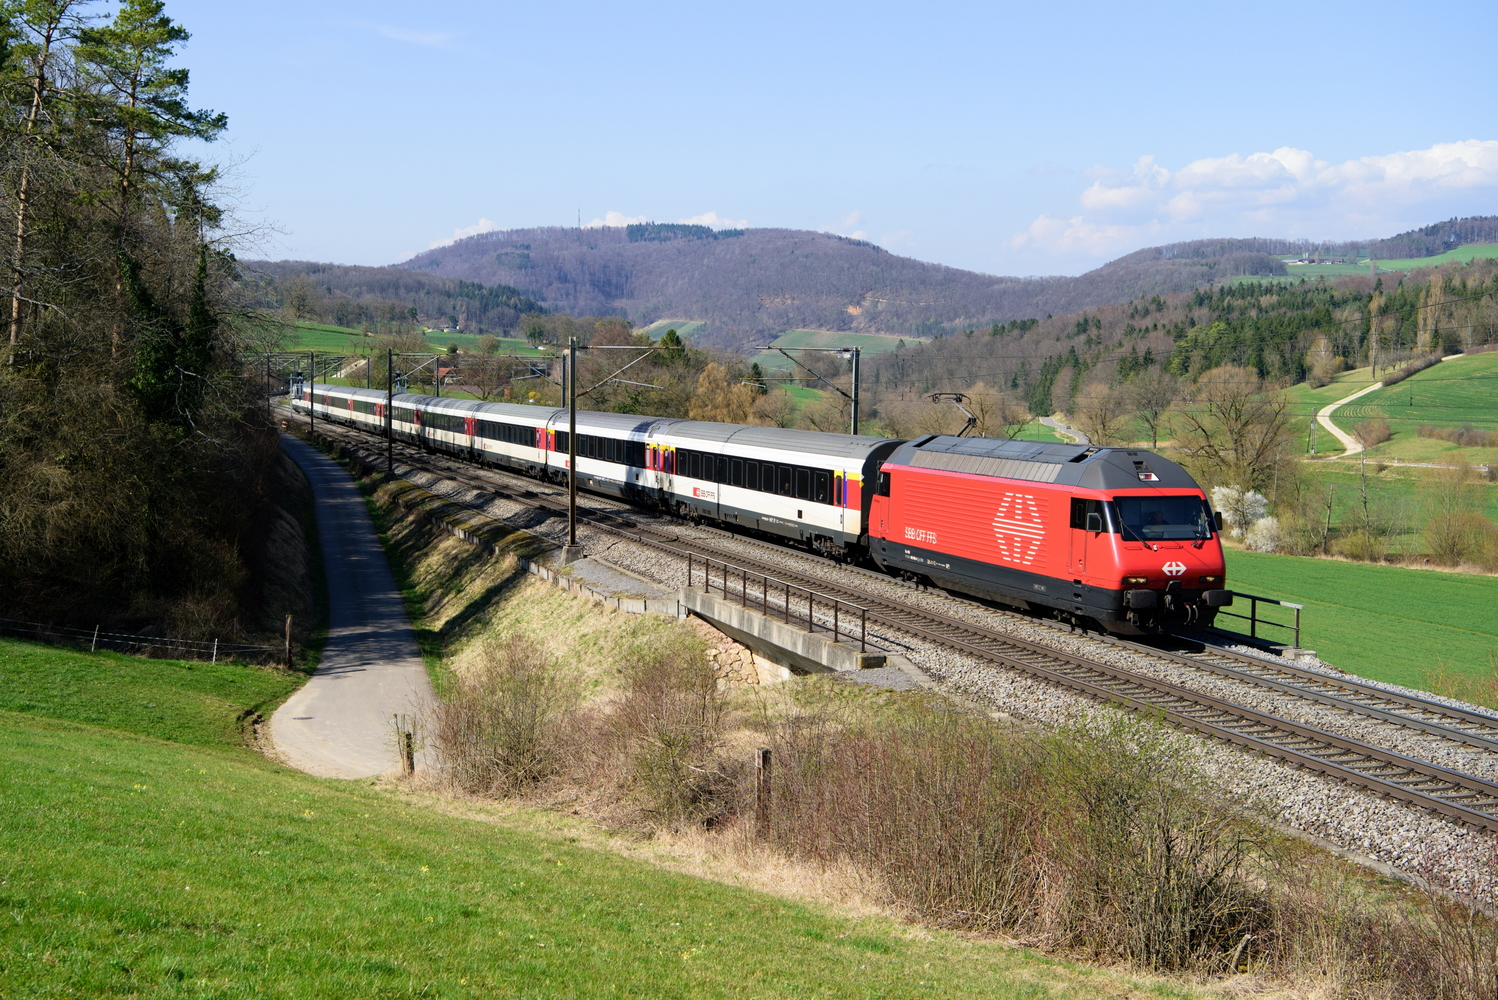 SBB Re 460 090-4 Goffersberg 10.jpg